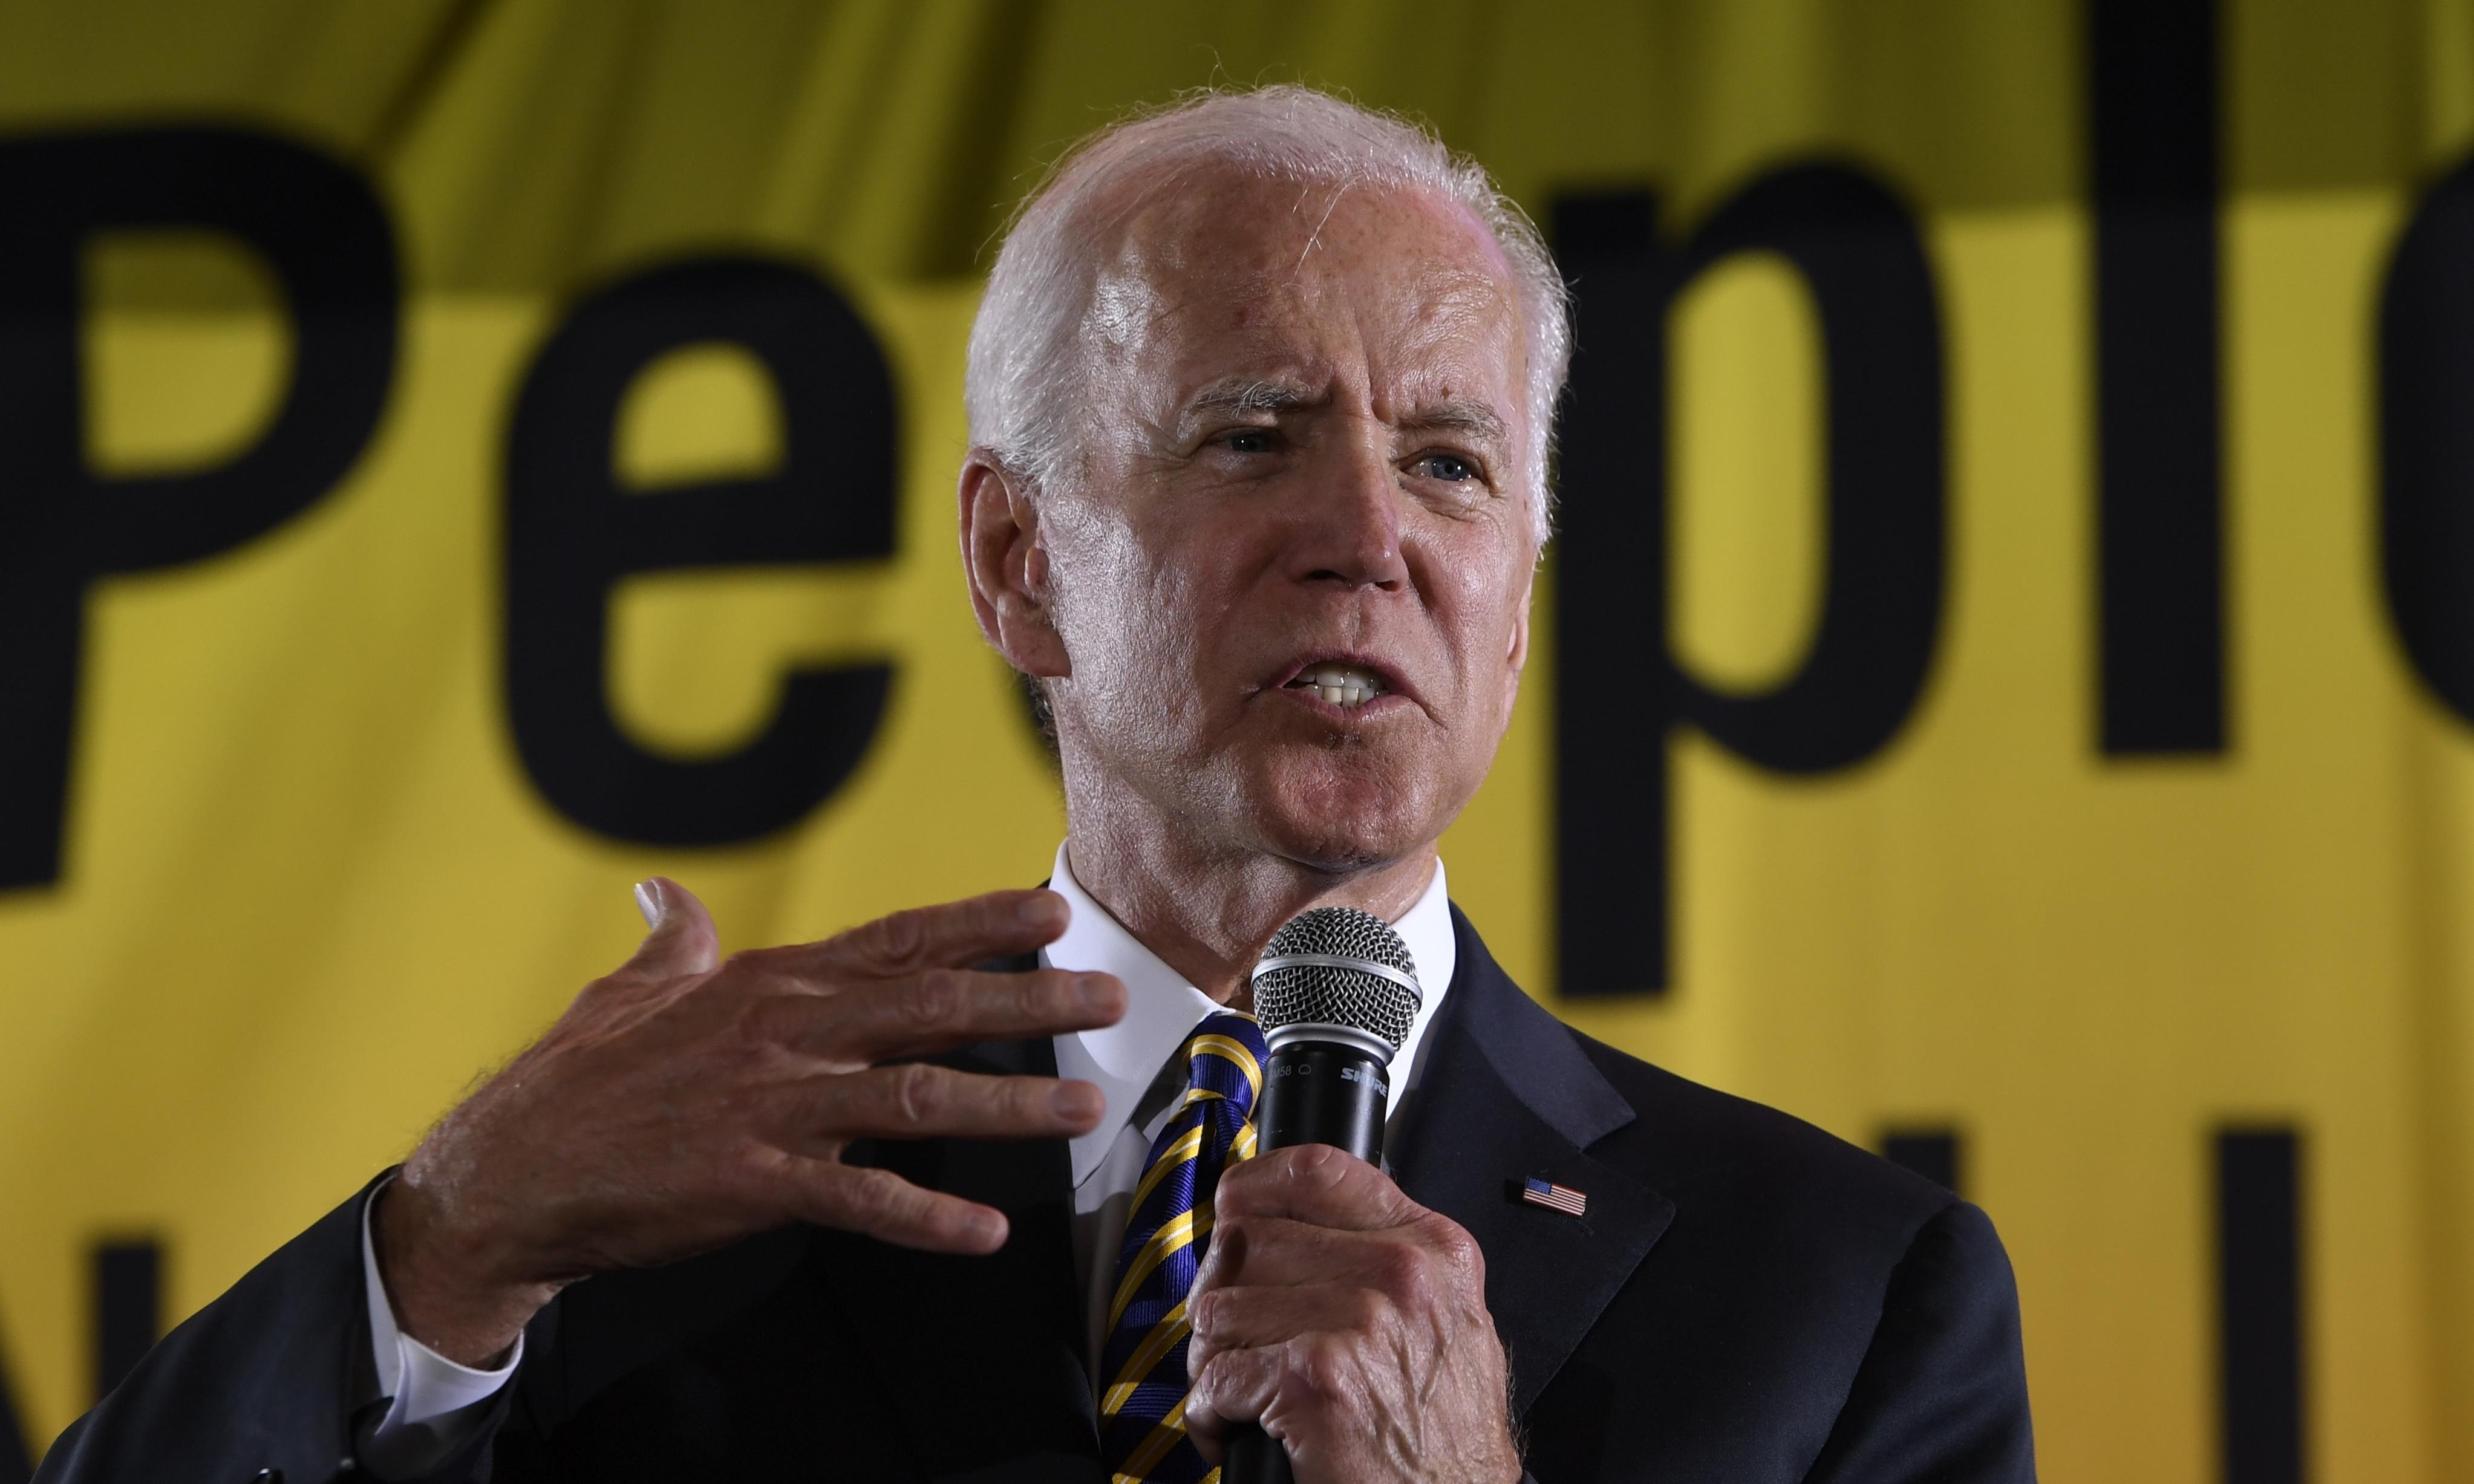 Biden spars with Warren and Sanders at first event facing rival Democrats